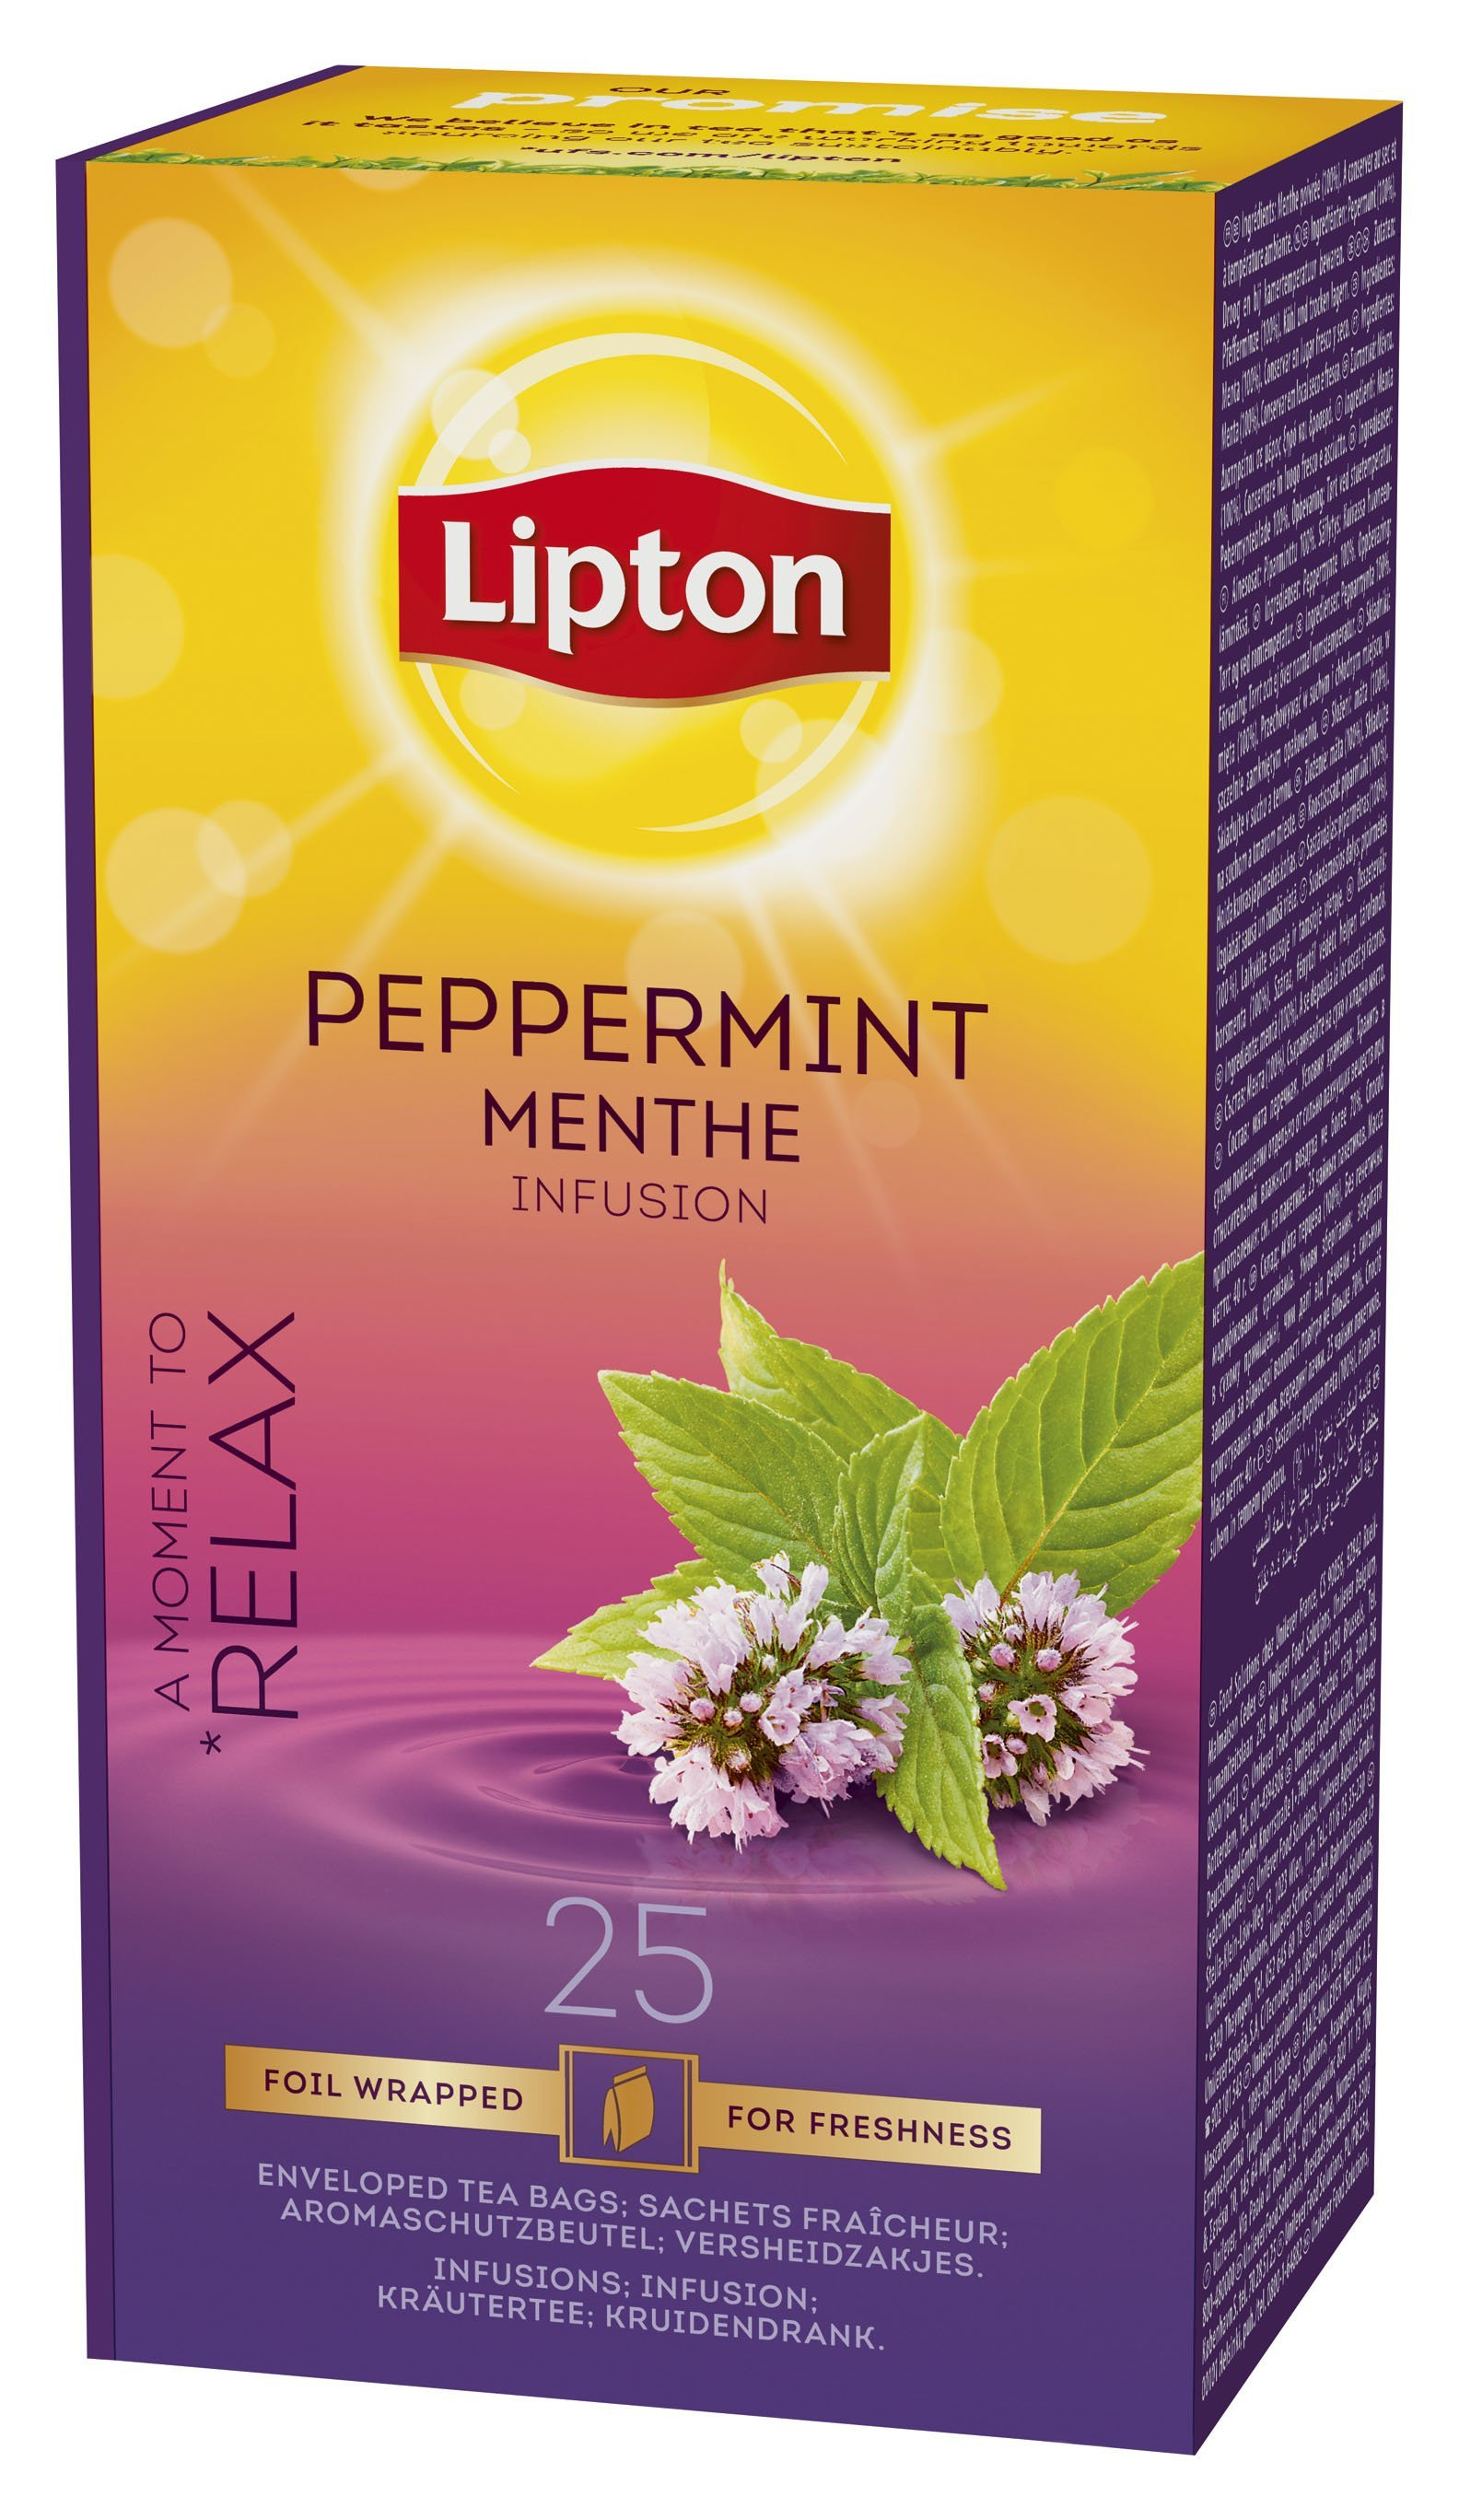 Lipton Peppermint Menthe Infusion 25 Filtri